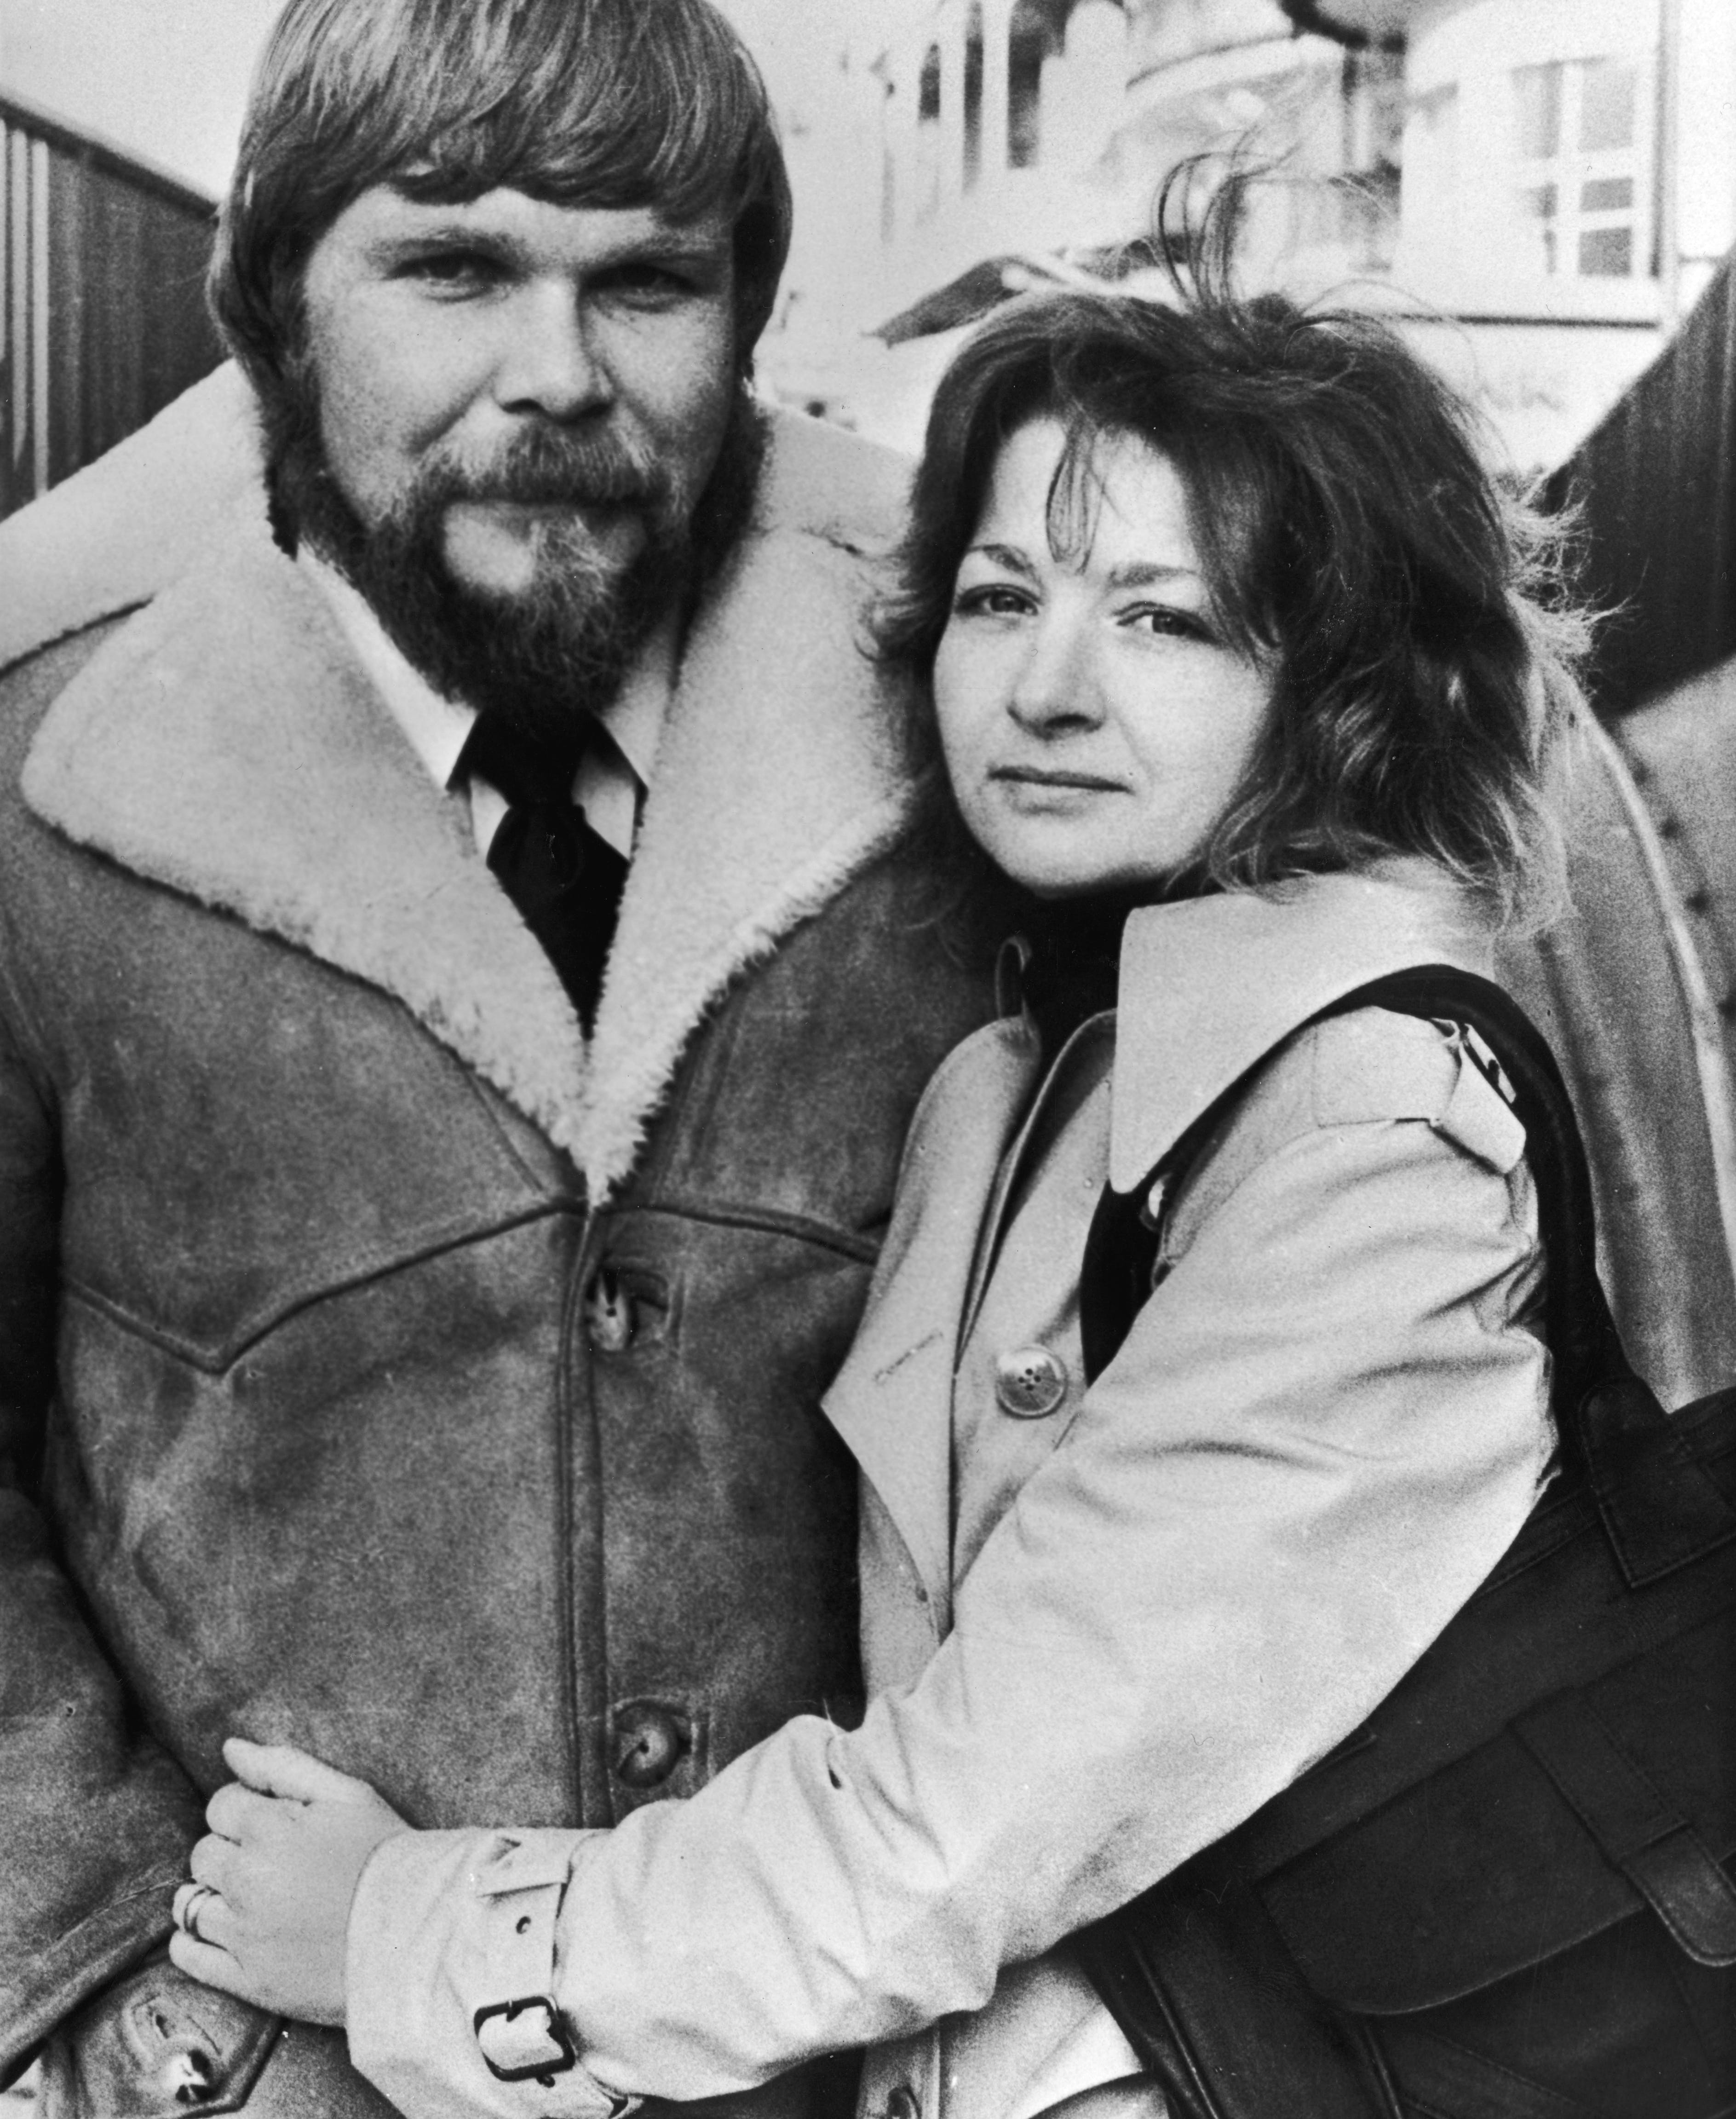 George and Kathy Lutz, former owners of the haunted house on 112 Ocean Avenue in Amityville, New York, pose during a press tour for the book, The Amityville Horror in London, England. The Lutzes recounted their stories to scriptwriter Jay Anson who wrote the book.  (Photo by Hulton Archive/Getty Images)